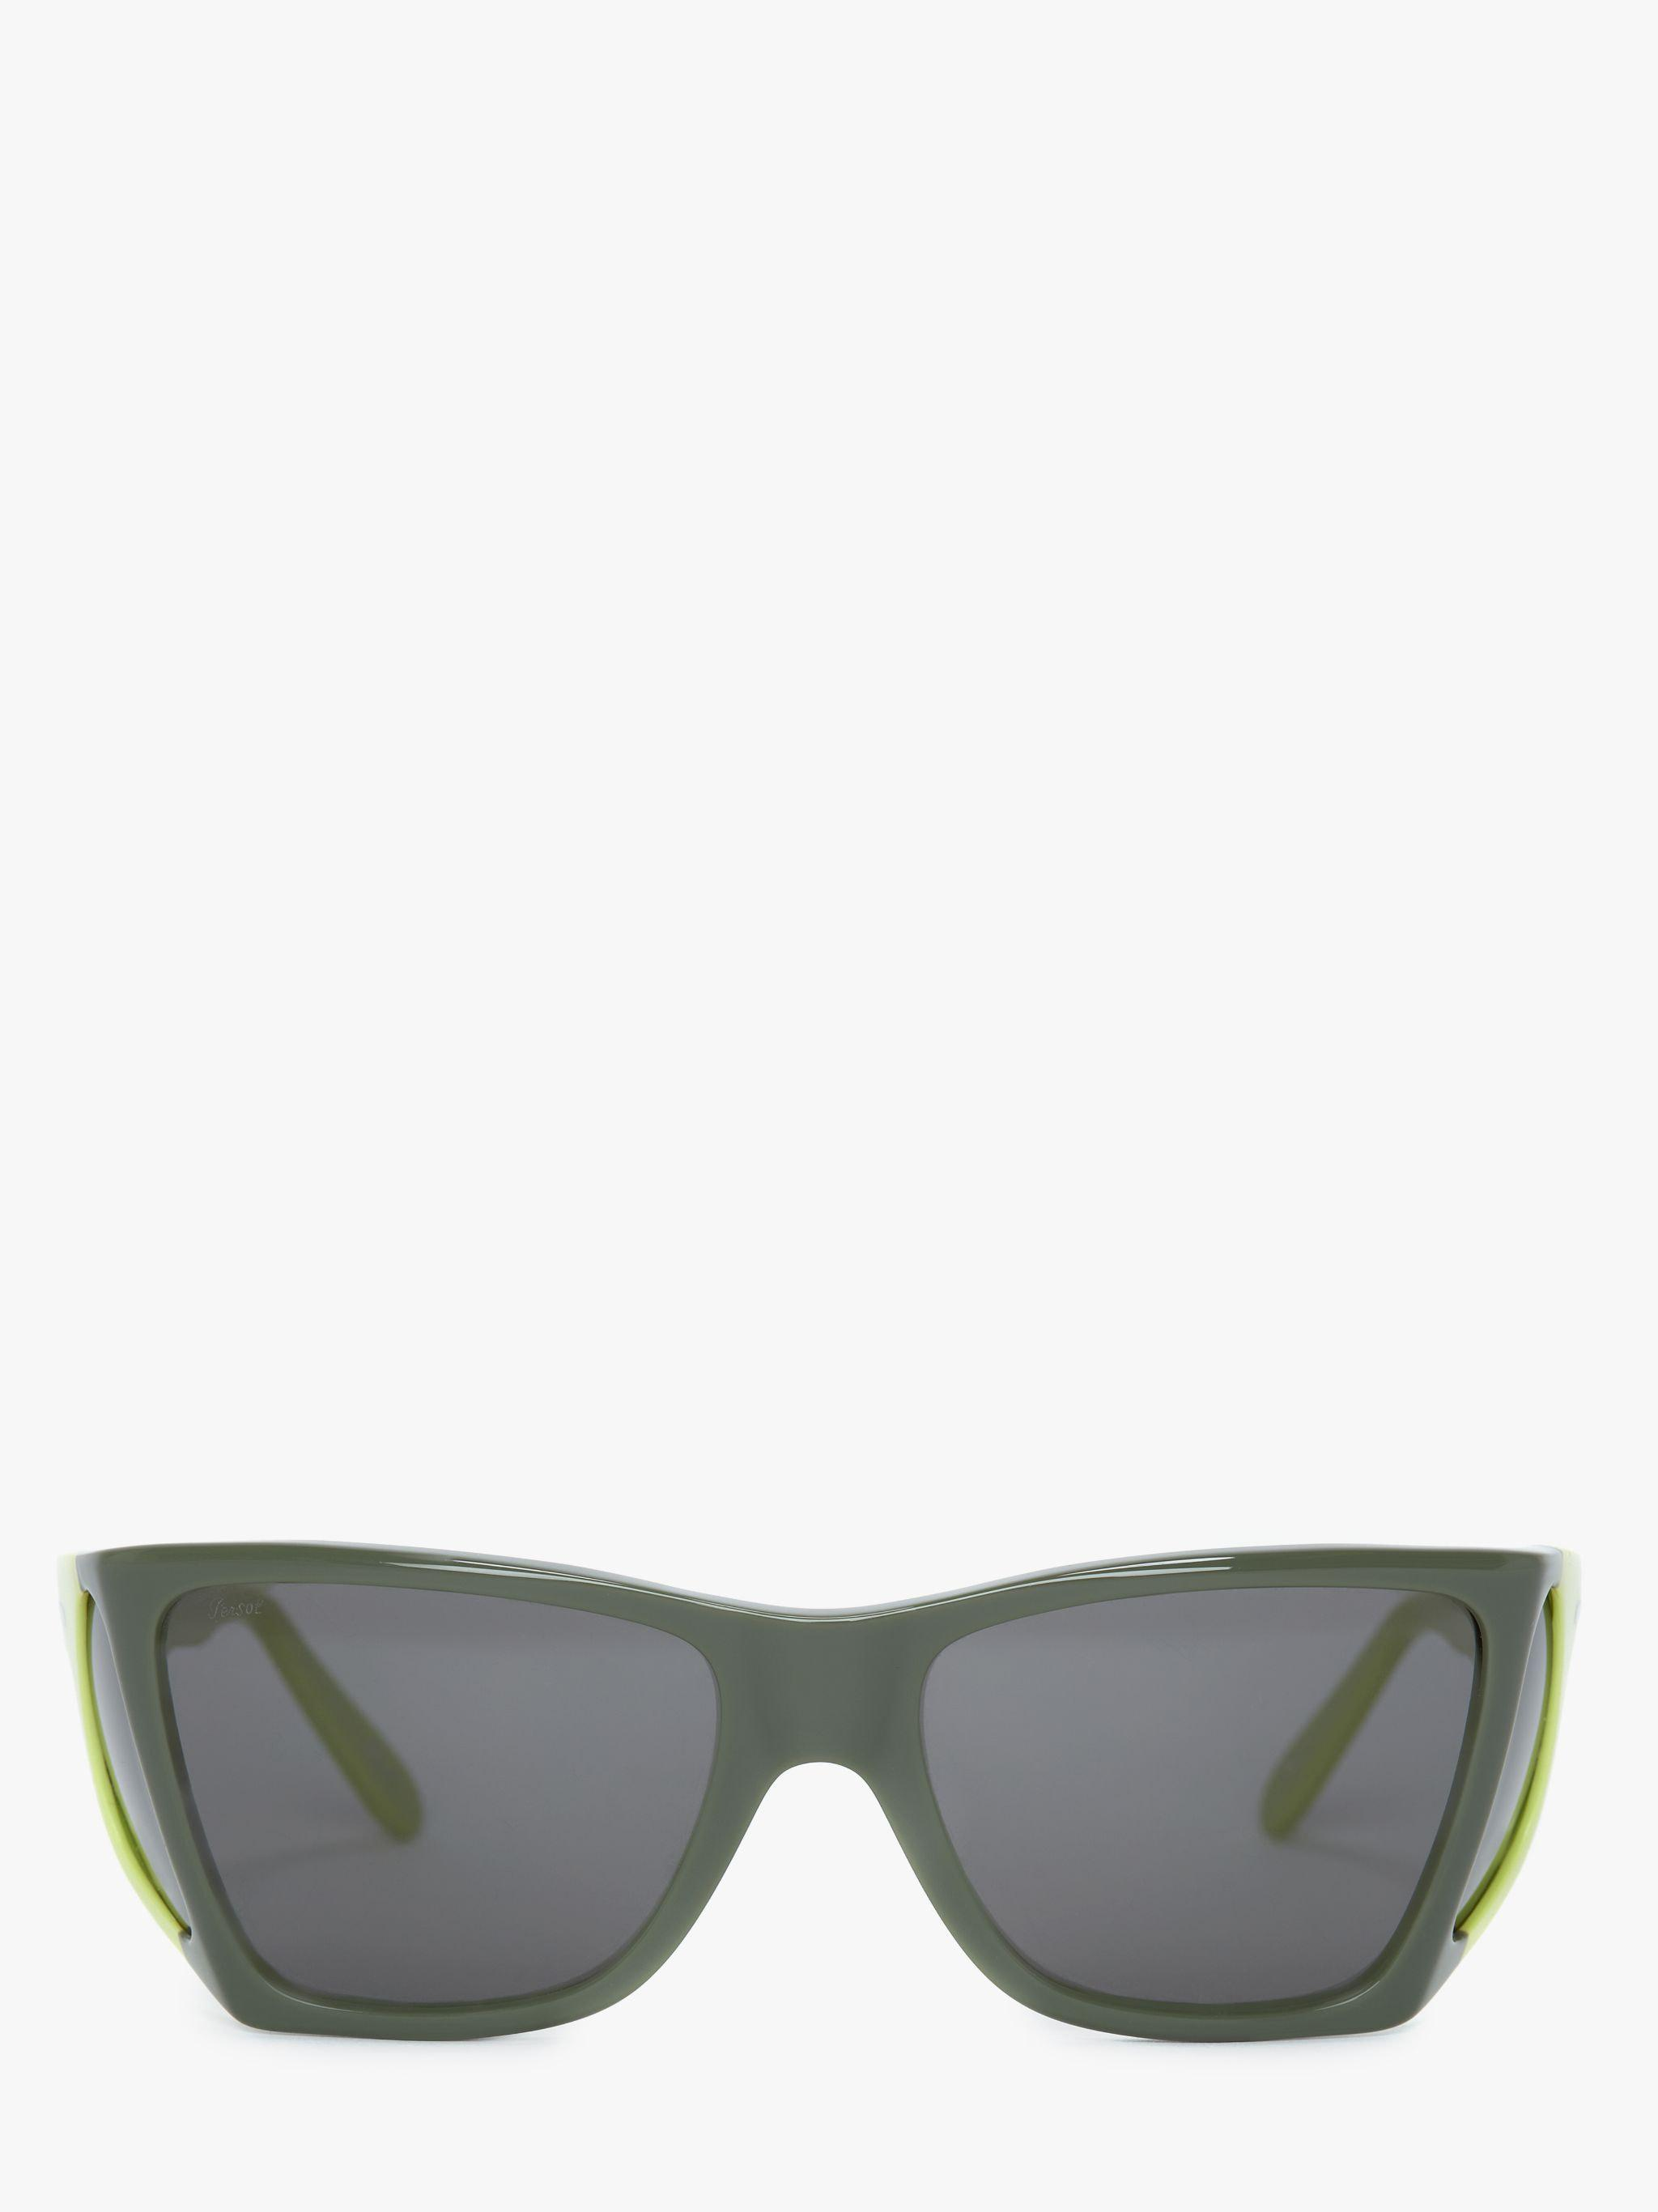 JW ANDERSON x PERSOL: WIDE FRAME SUNGLASSES